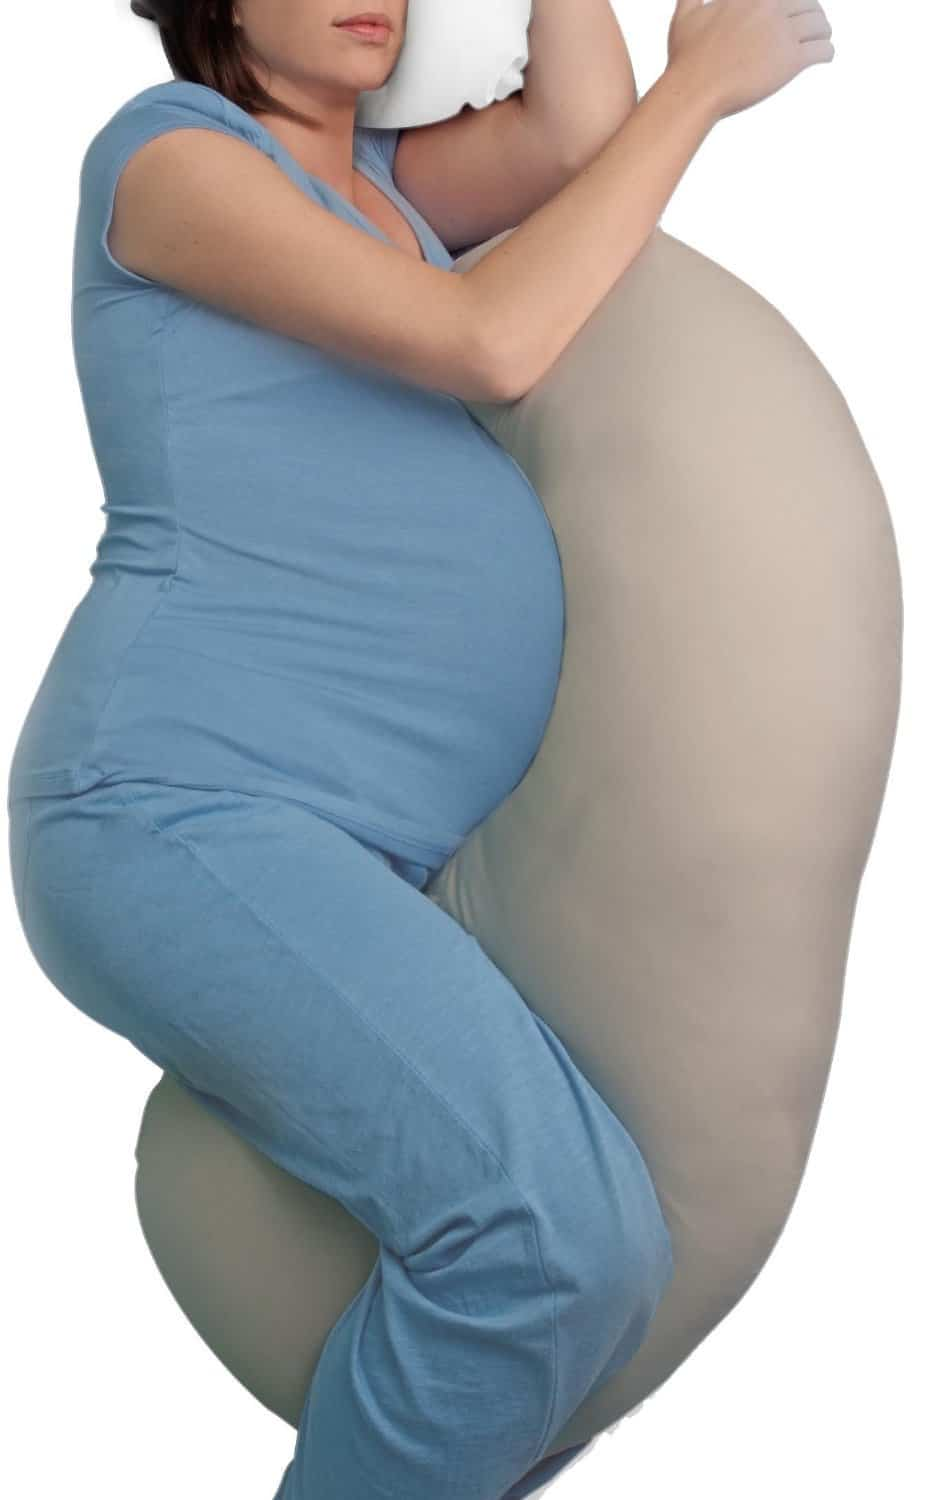 pregnancy_comforts_sealy_maternity_pillow